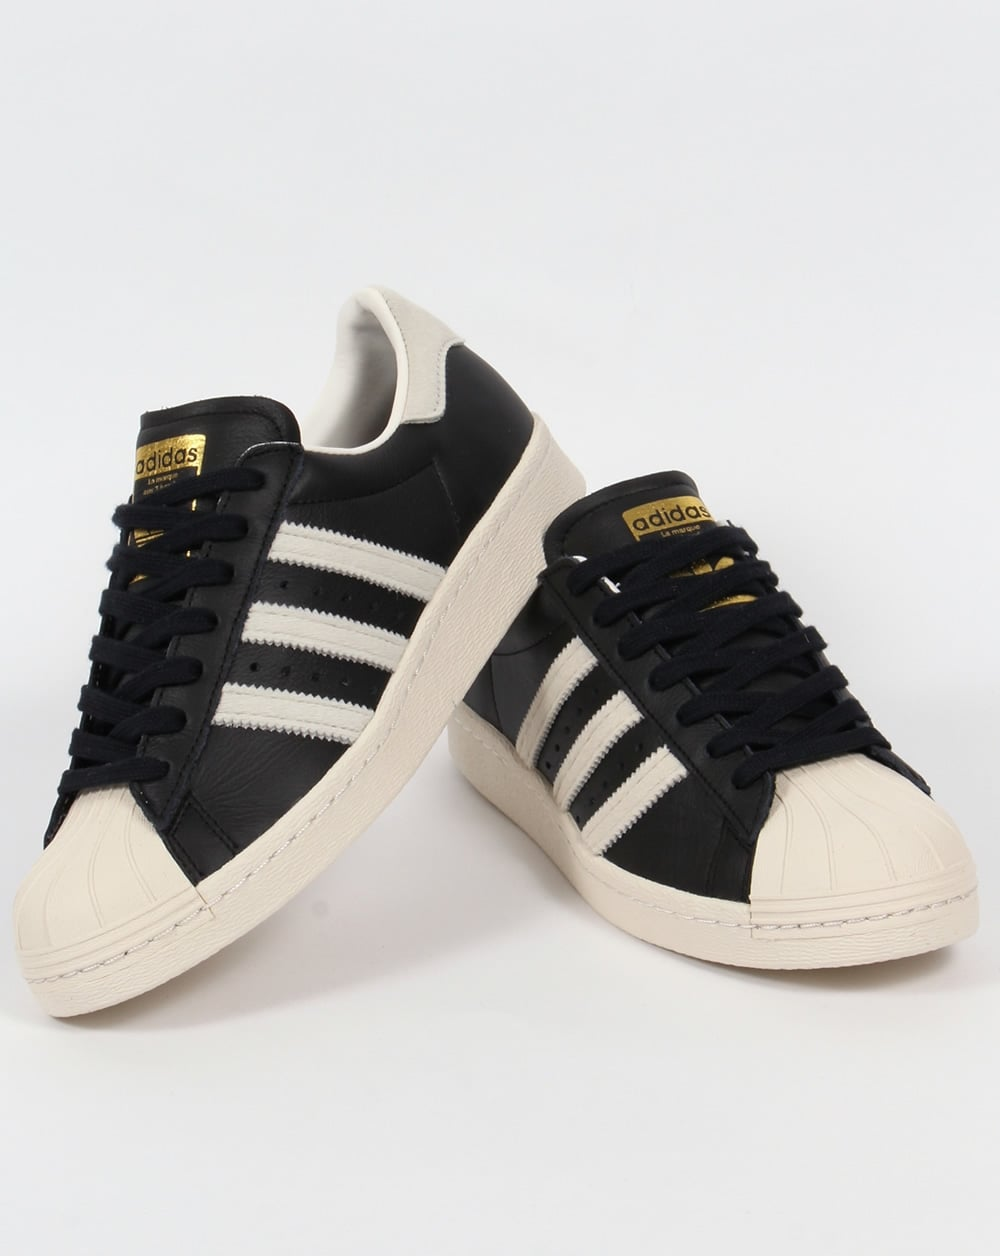 012ab8b7664 Adidas Superstar 80s Trainers Black White Gold